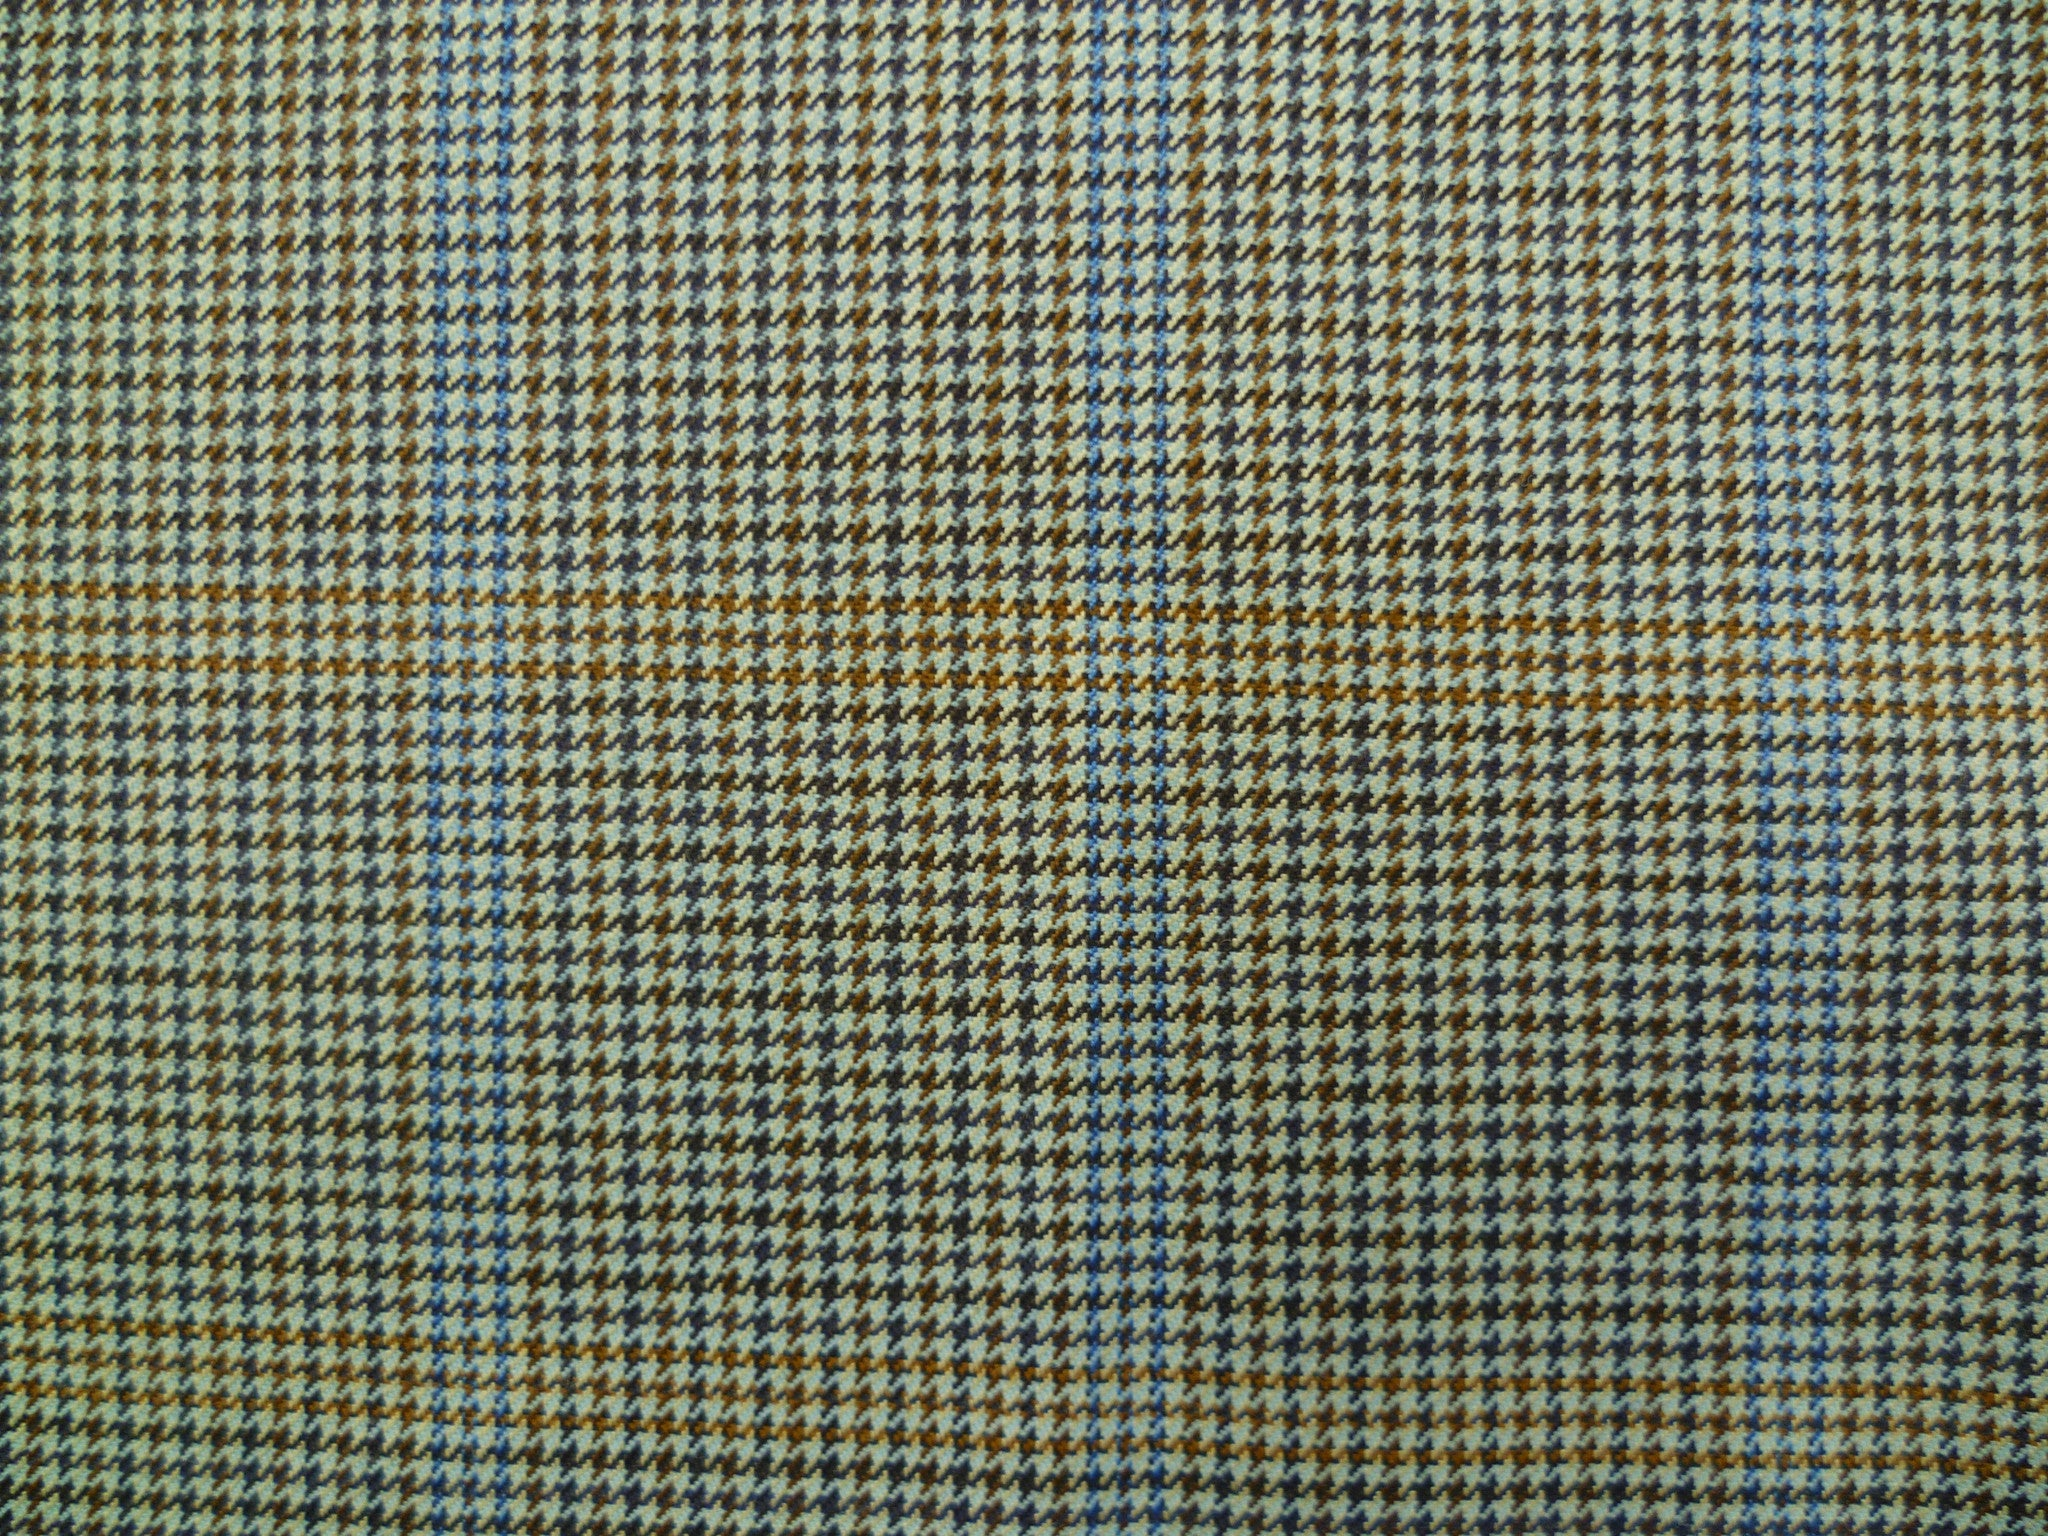 Mixed Blue, Beige, Brown Dogstooths and Blue Overchecked Wool